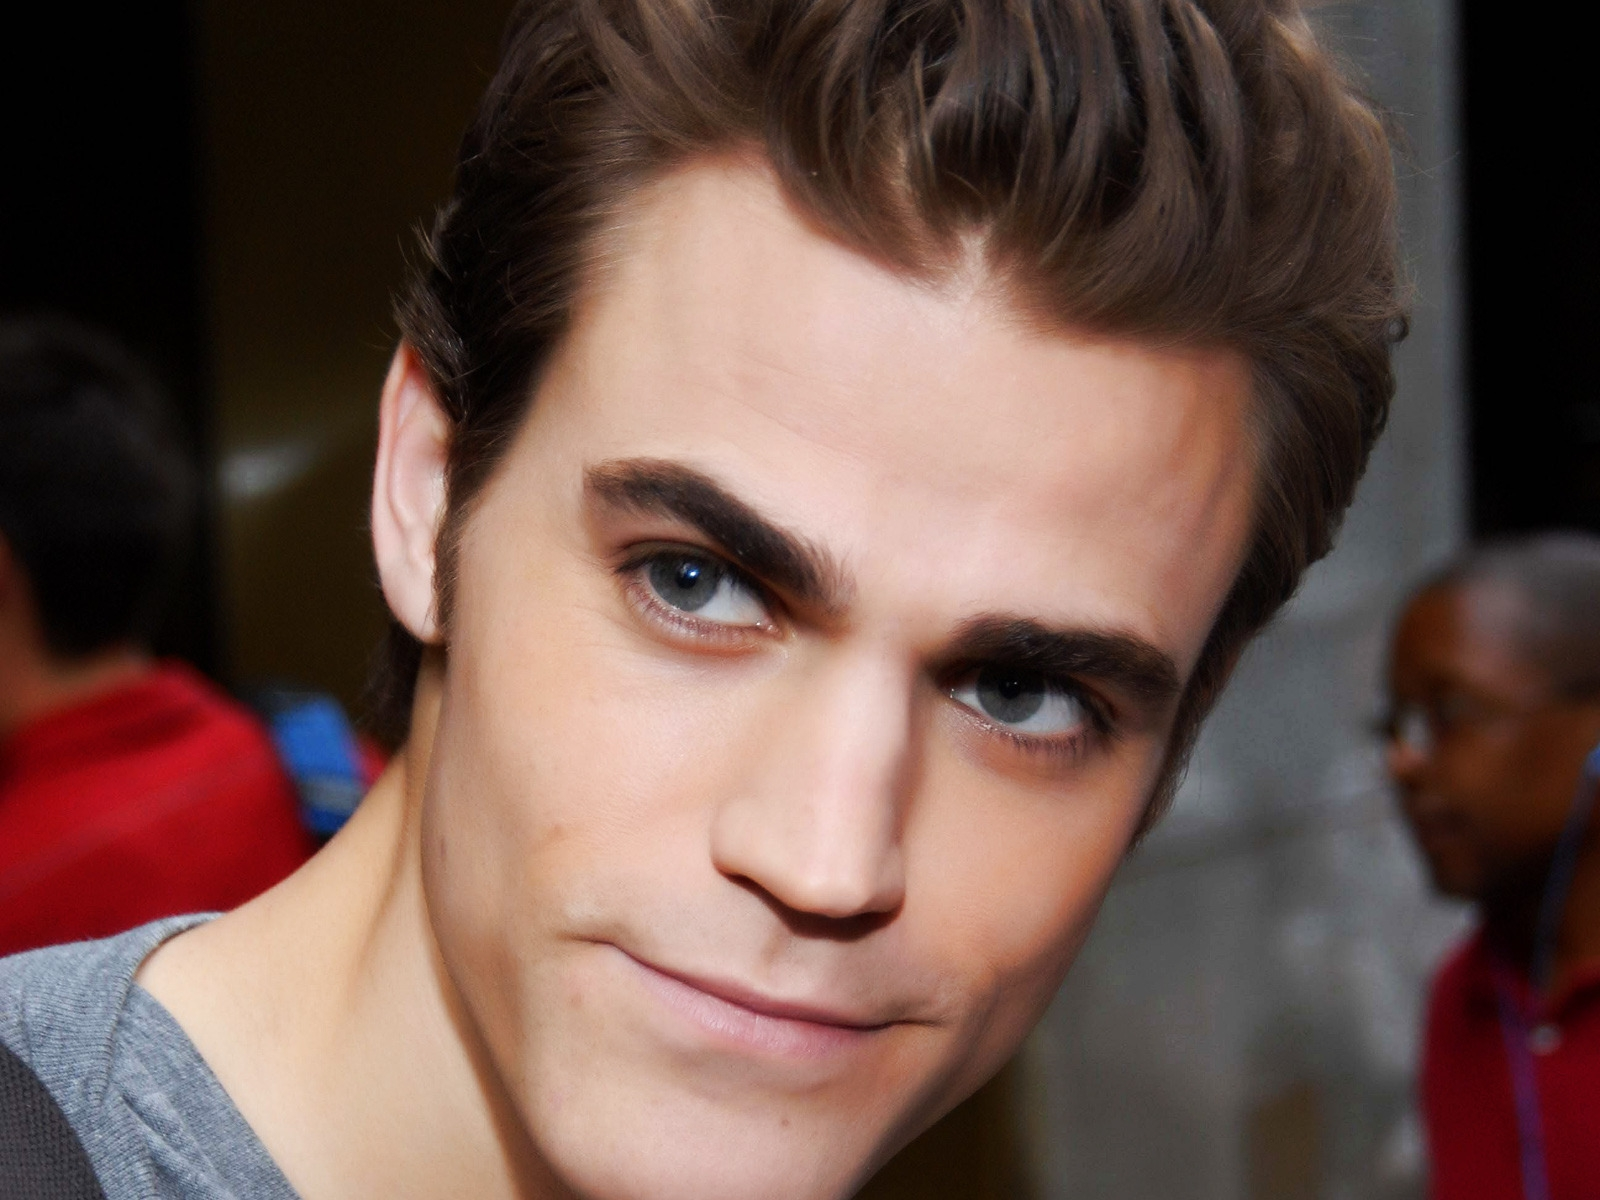 Paul Wesley Close Up for 1600 x 1200 resolution